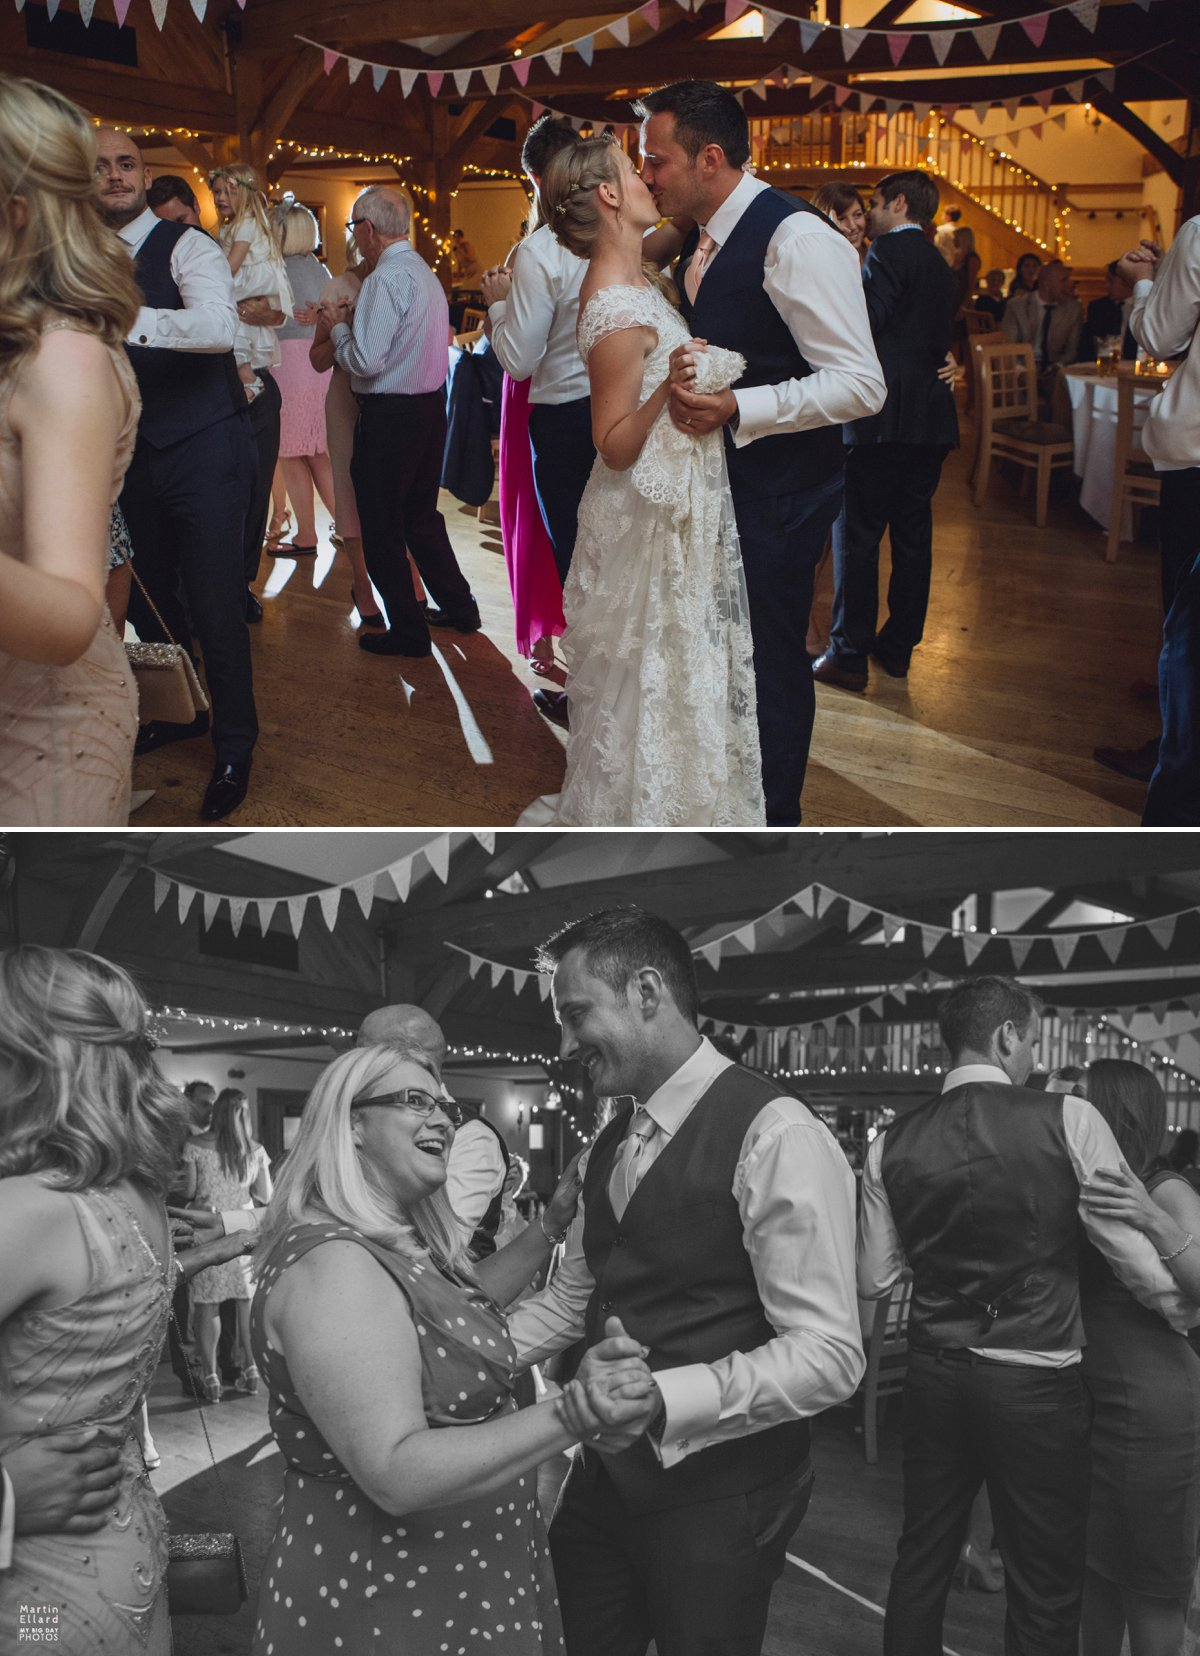 wedding guests dancing Gower